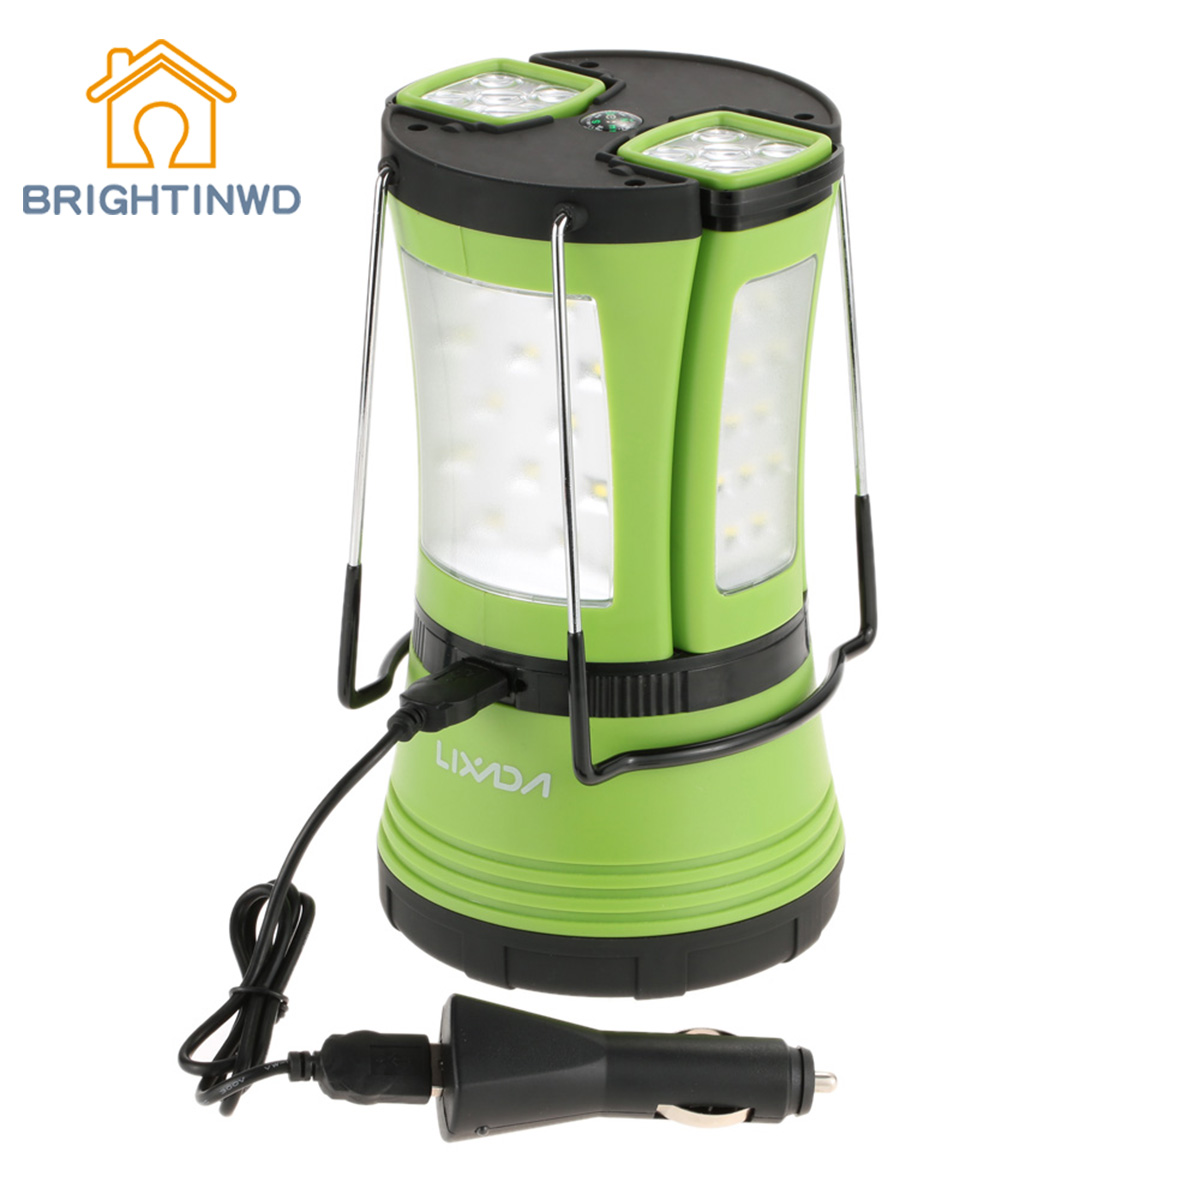 BRIGHTINWD LED Rechargeable Waterproof Tent Light Camping Outdoor Camping Lantern 2 Detachable Flashlight Torch 10W 600LM brightinwd q9ir sos emergency led light with remote control magnetic camping rechargeable outdoor portable lantern led camping